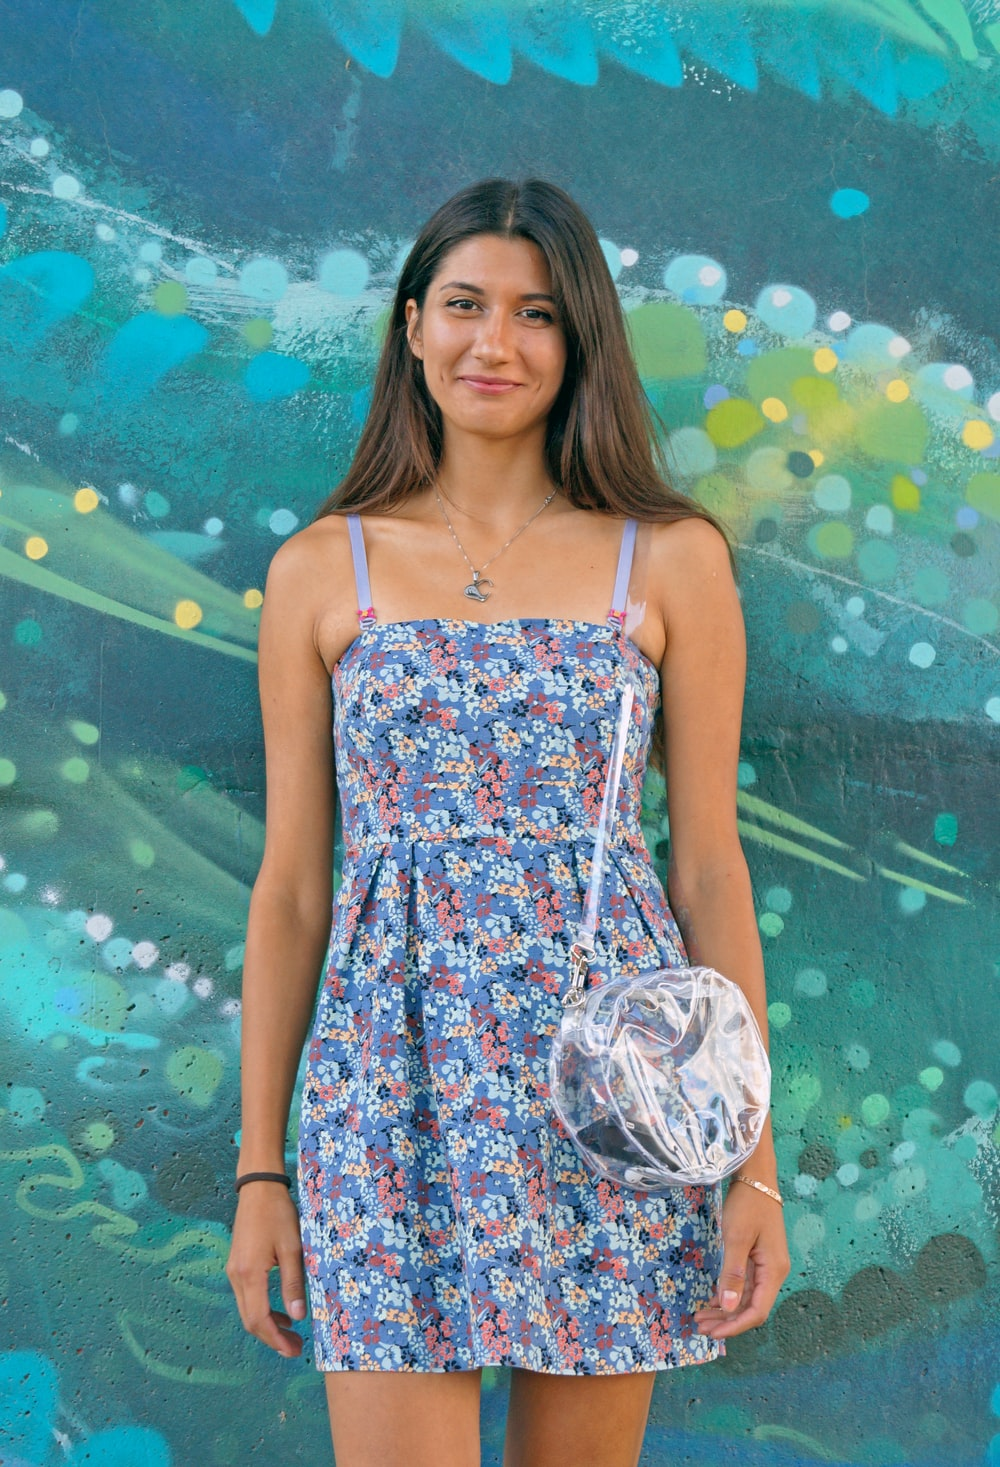 woman wearing blue and white floral spaghetti-strap dress